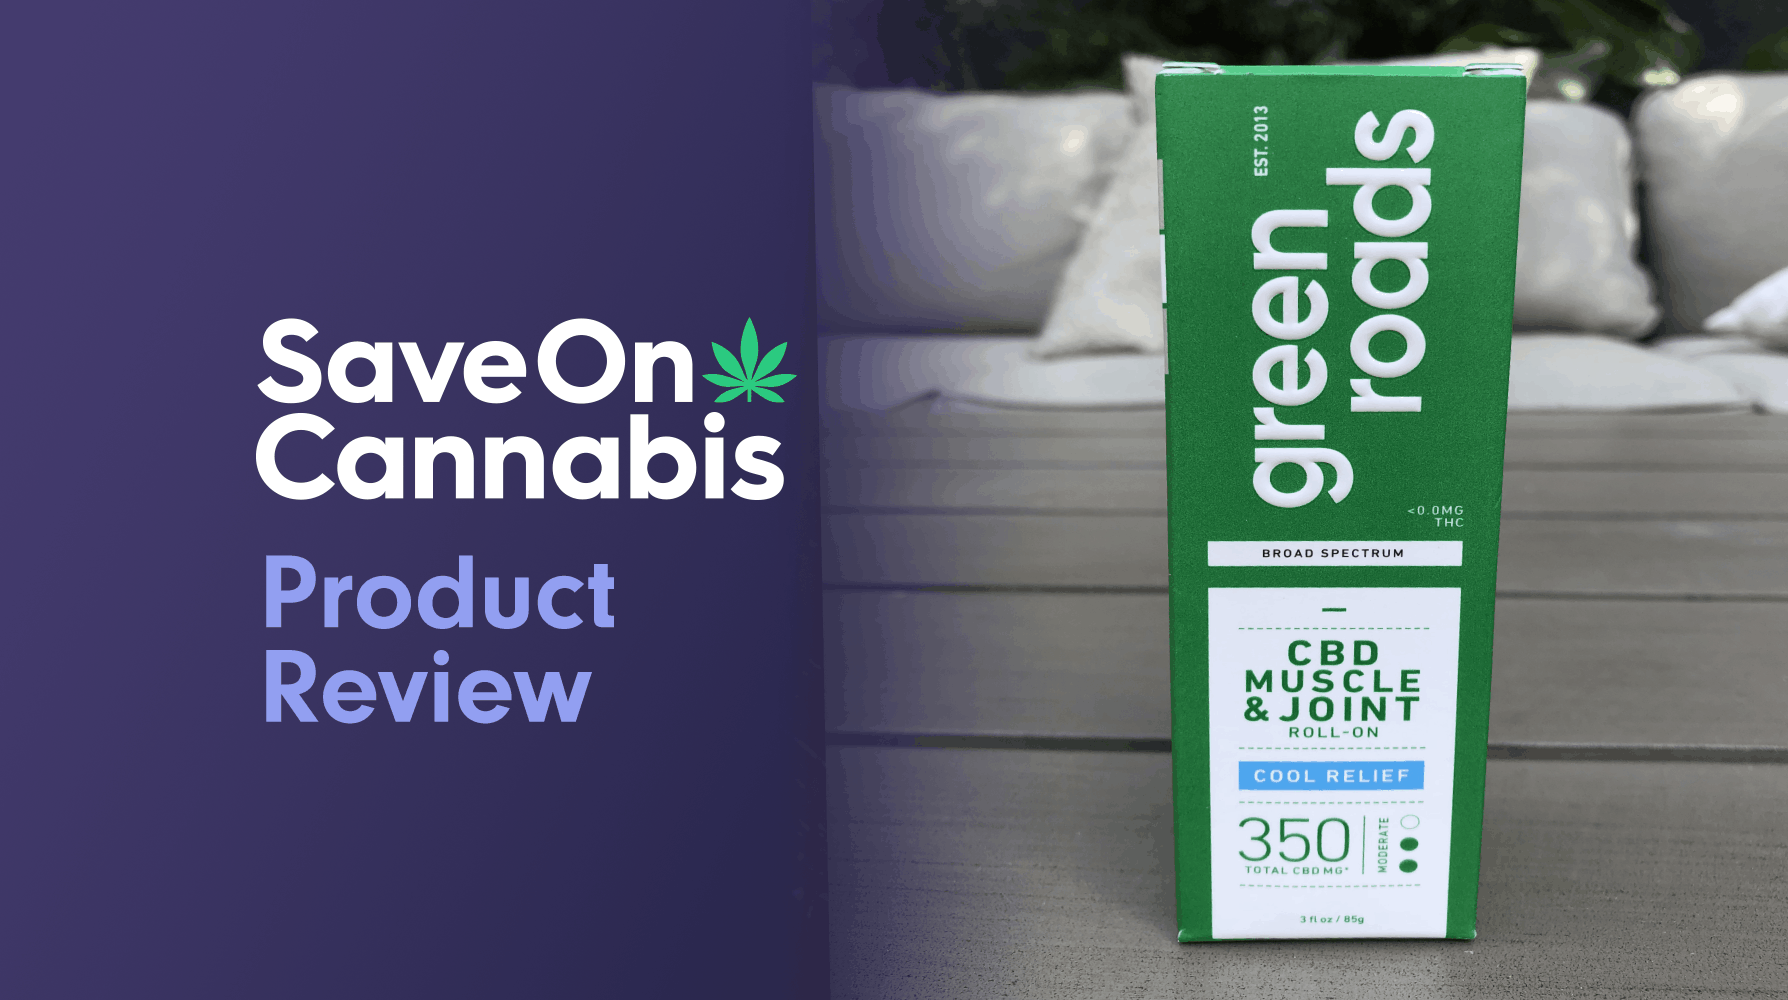 green roads cbd muscle and joint roll on save on cannabis website